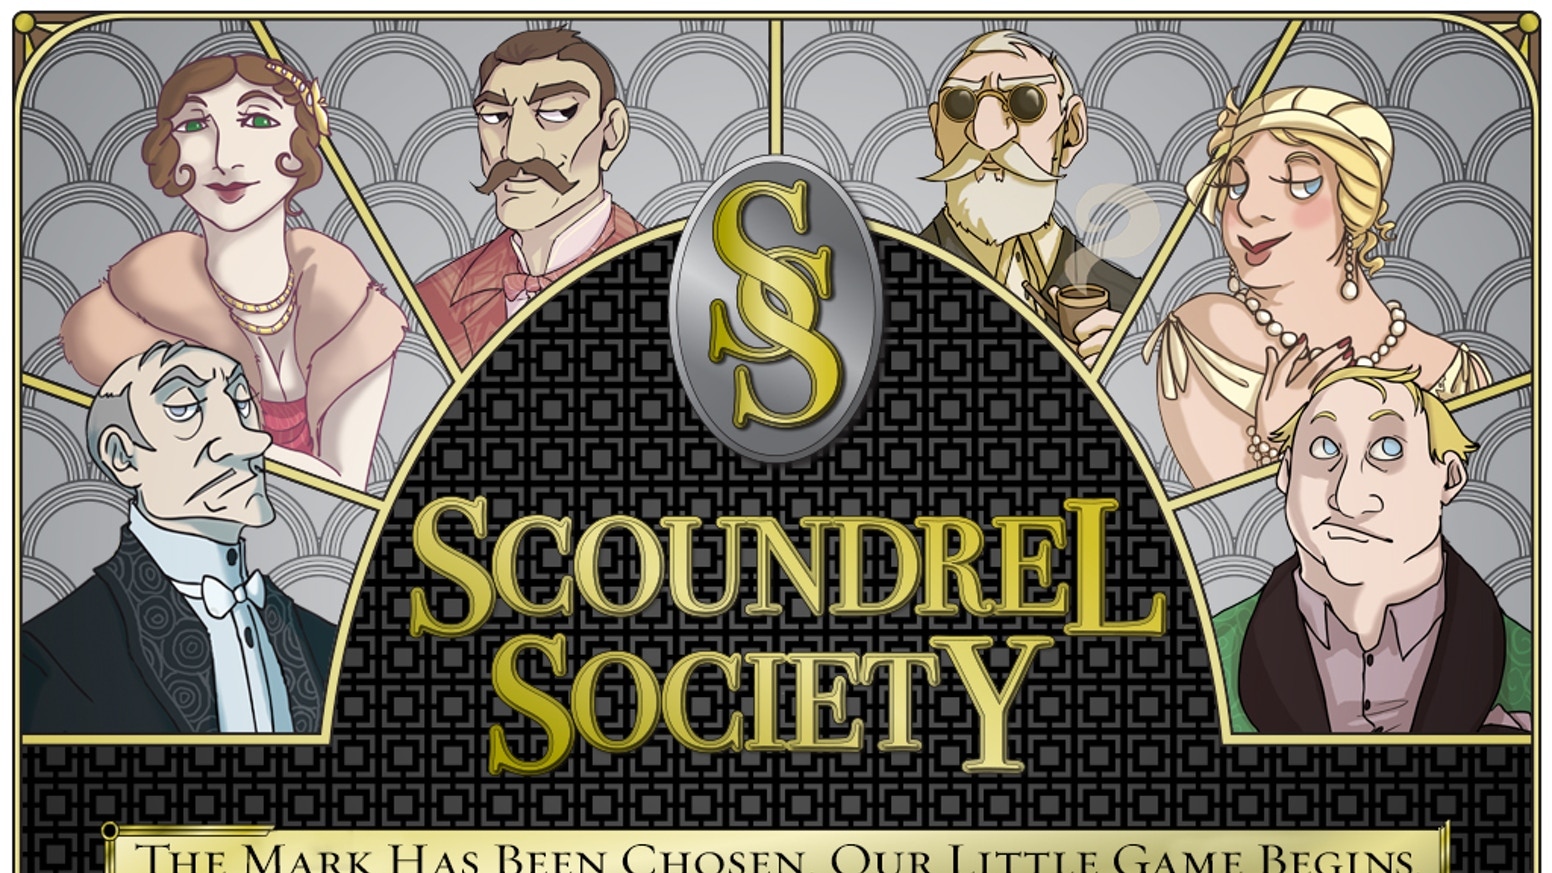 Scoundrel Society: a 2-5 player game that plays in under 45 mins where players portray elite con artists vying to steal valuable loot.